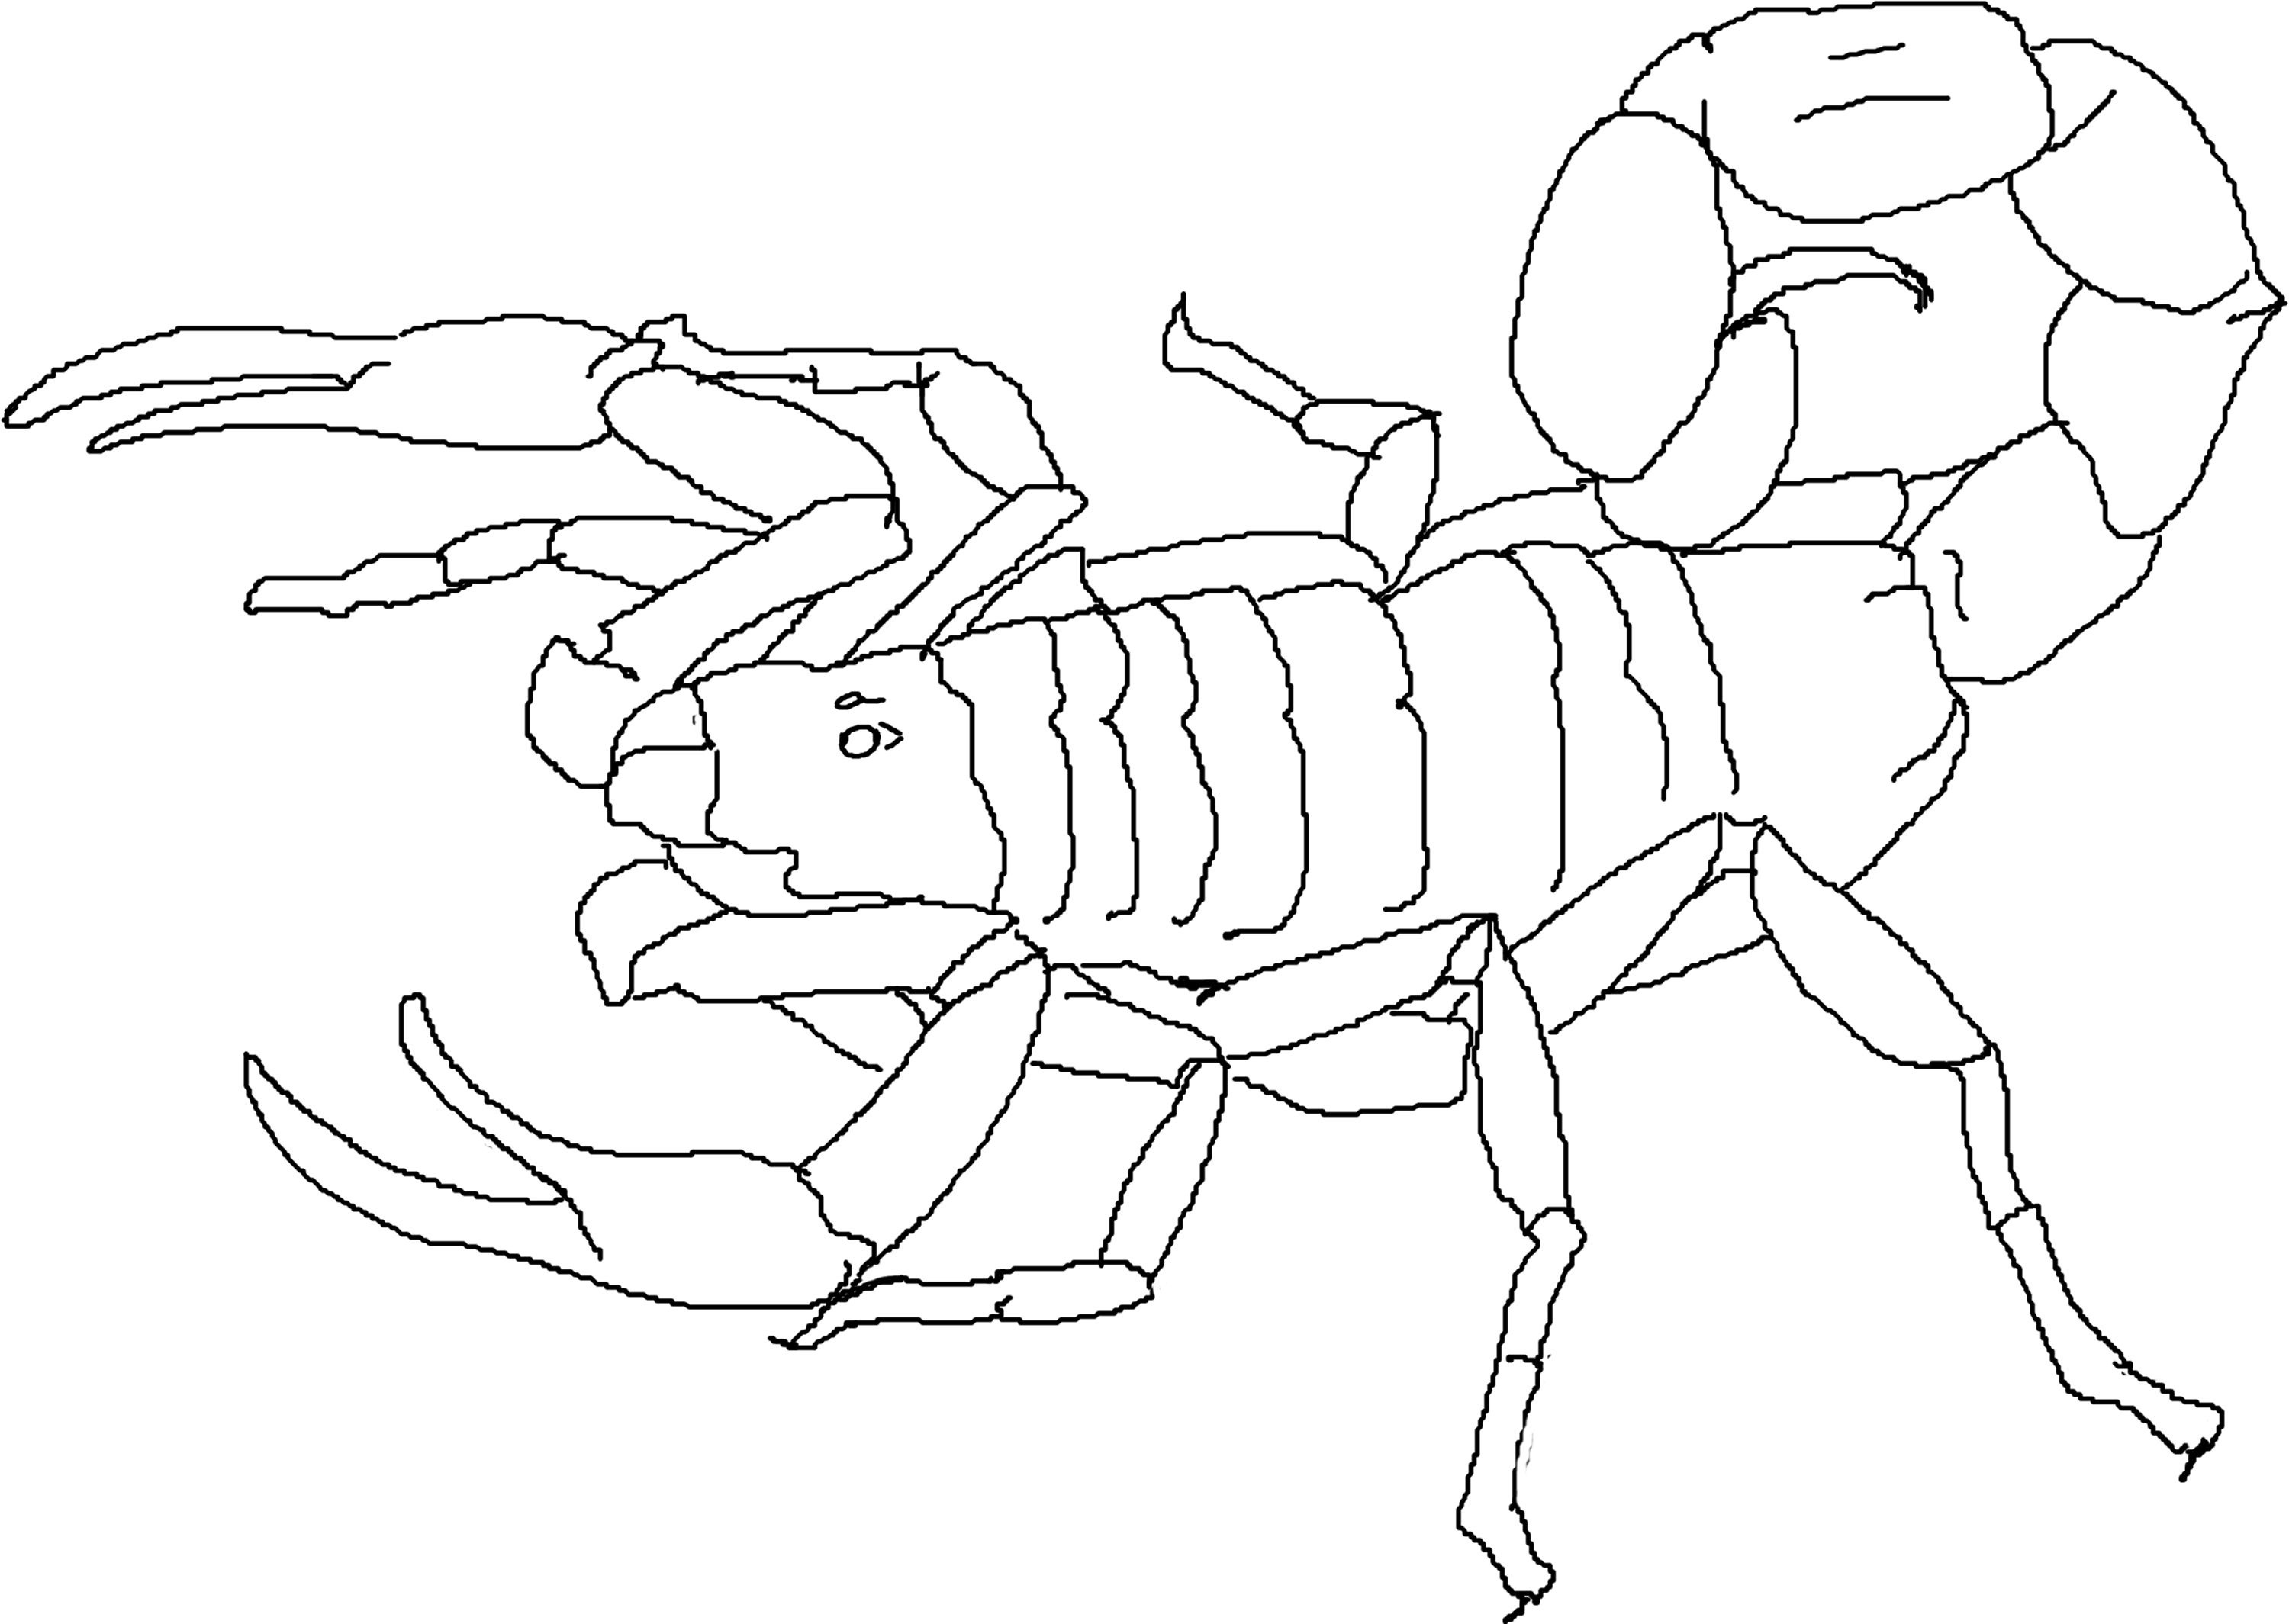 Coloring: Free Printable Scorpion Coloring Pages For Kids